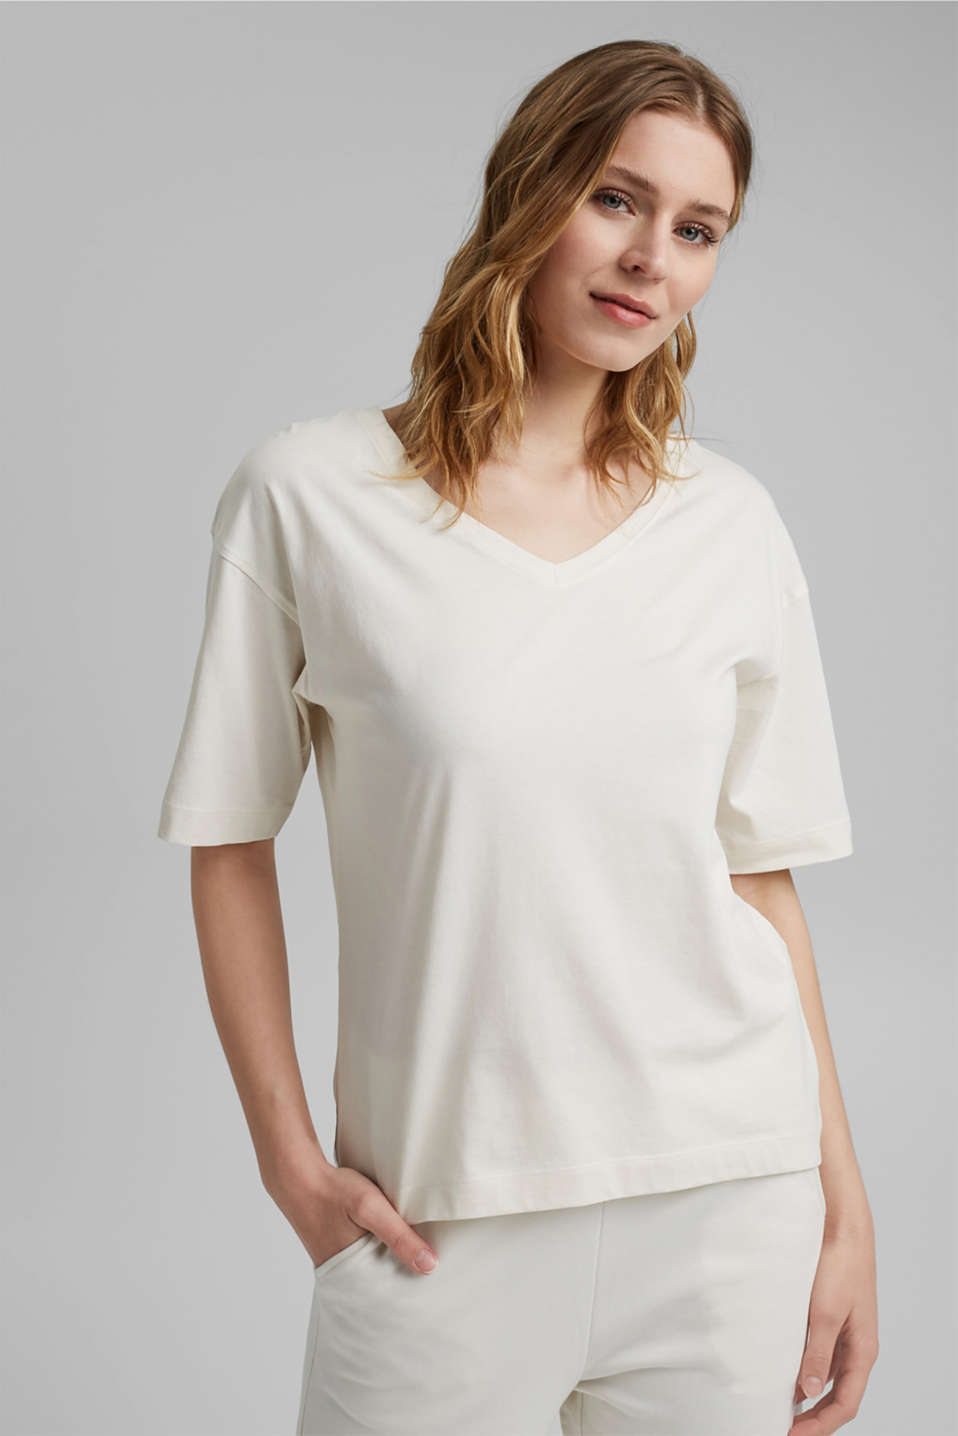 Esprit - Oversized T-shirt made of 100% organic cotton